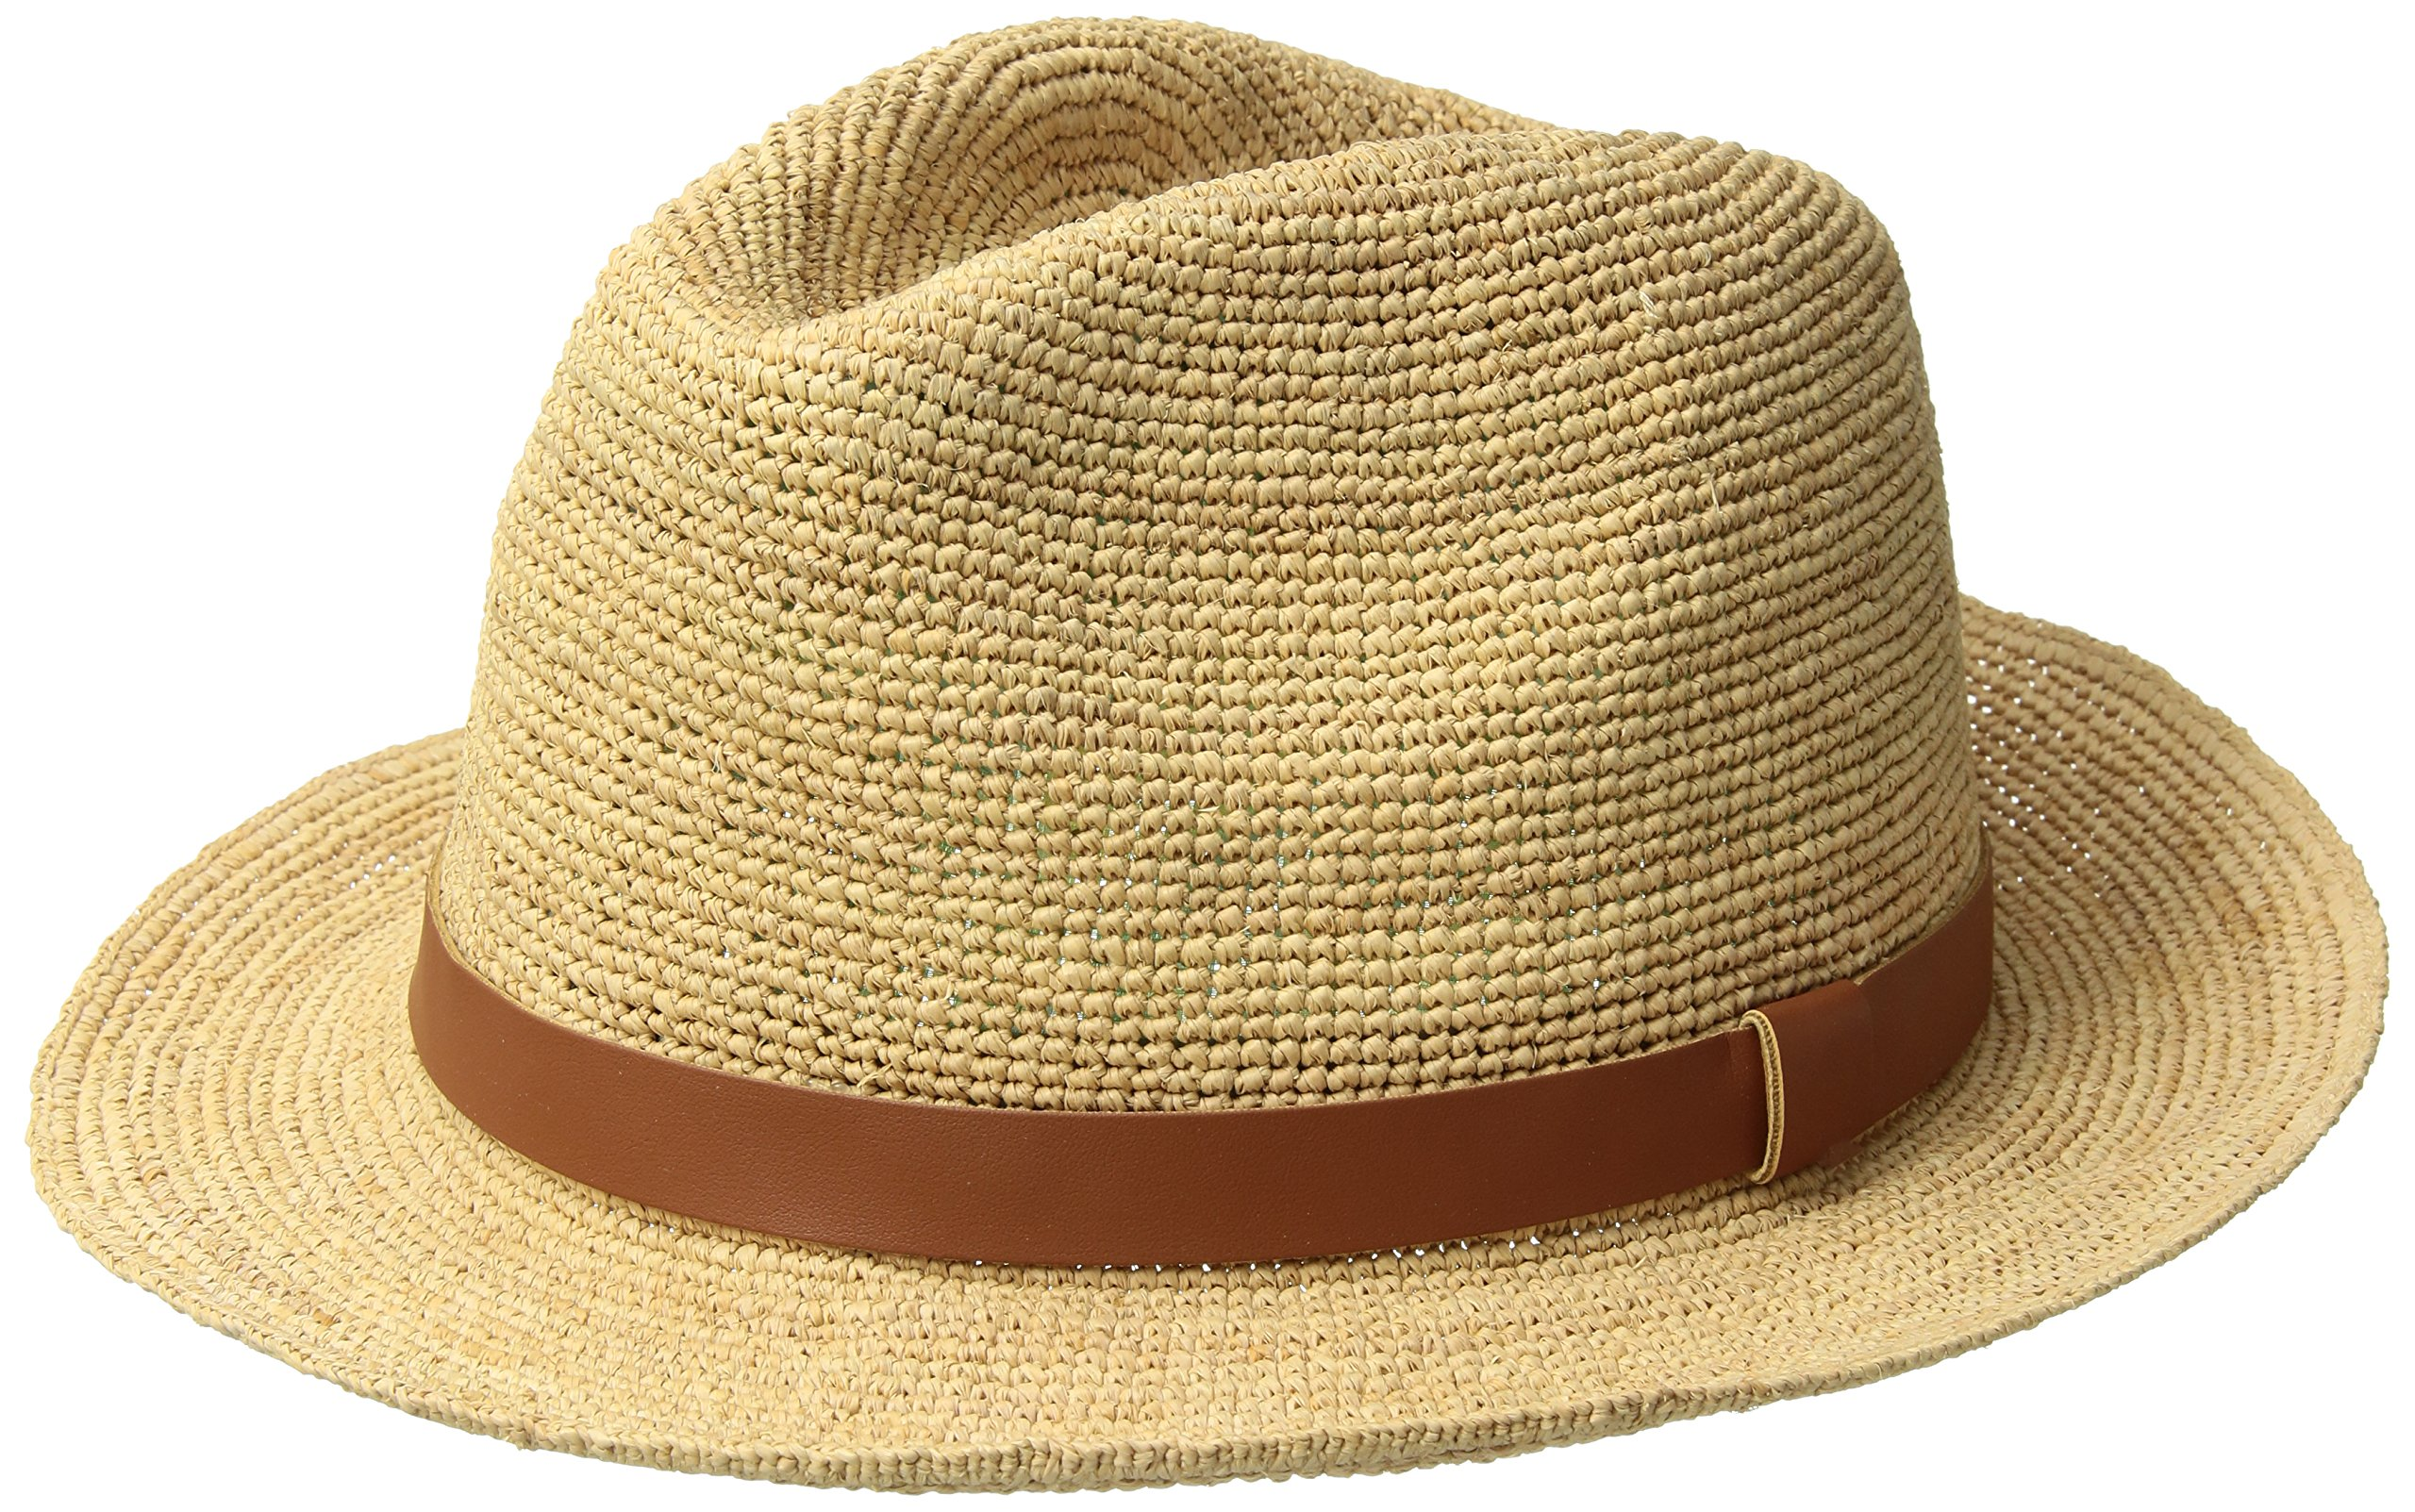 Sunday Afternoons Trinidad Hat, Natural, One Size